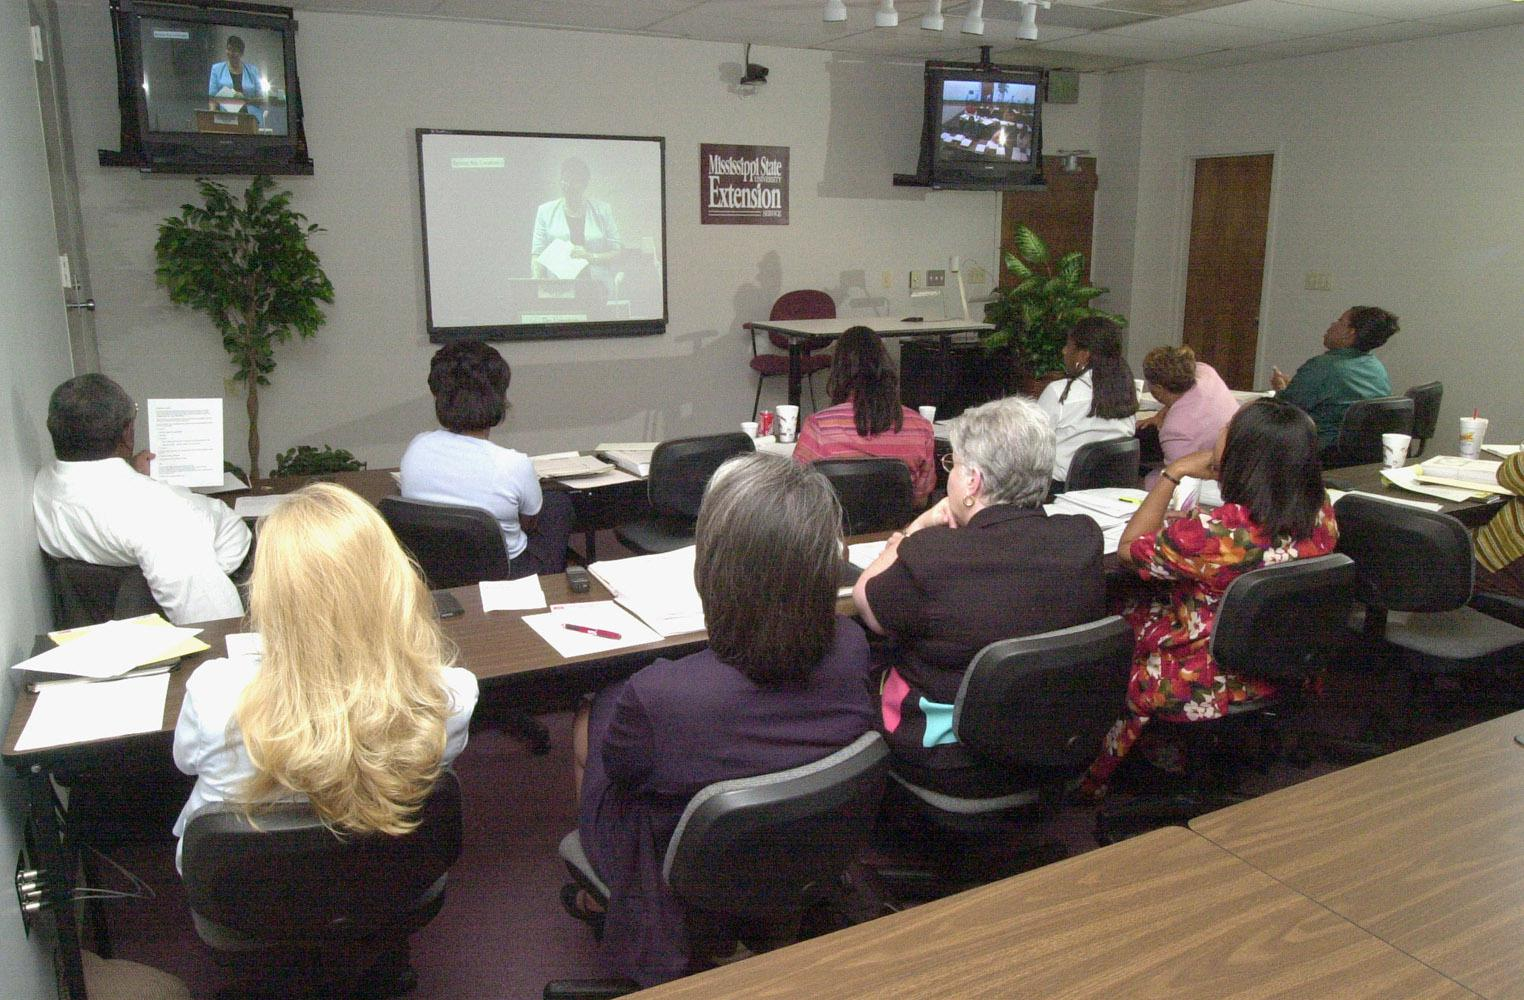 Video conferences reduce the travel necessary for both the presenters and the participants.